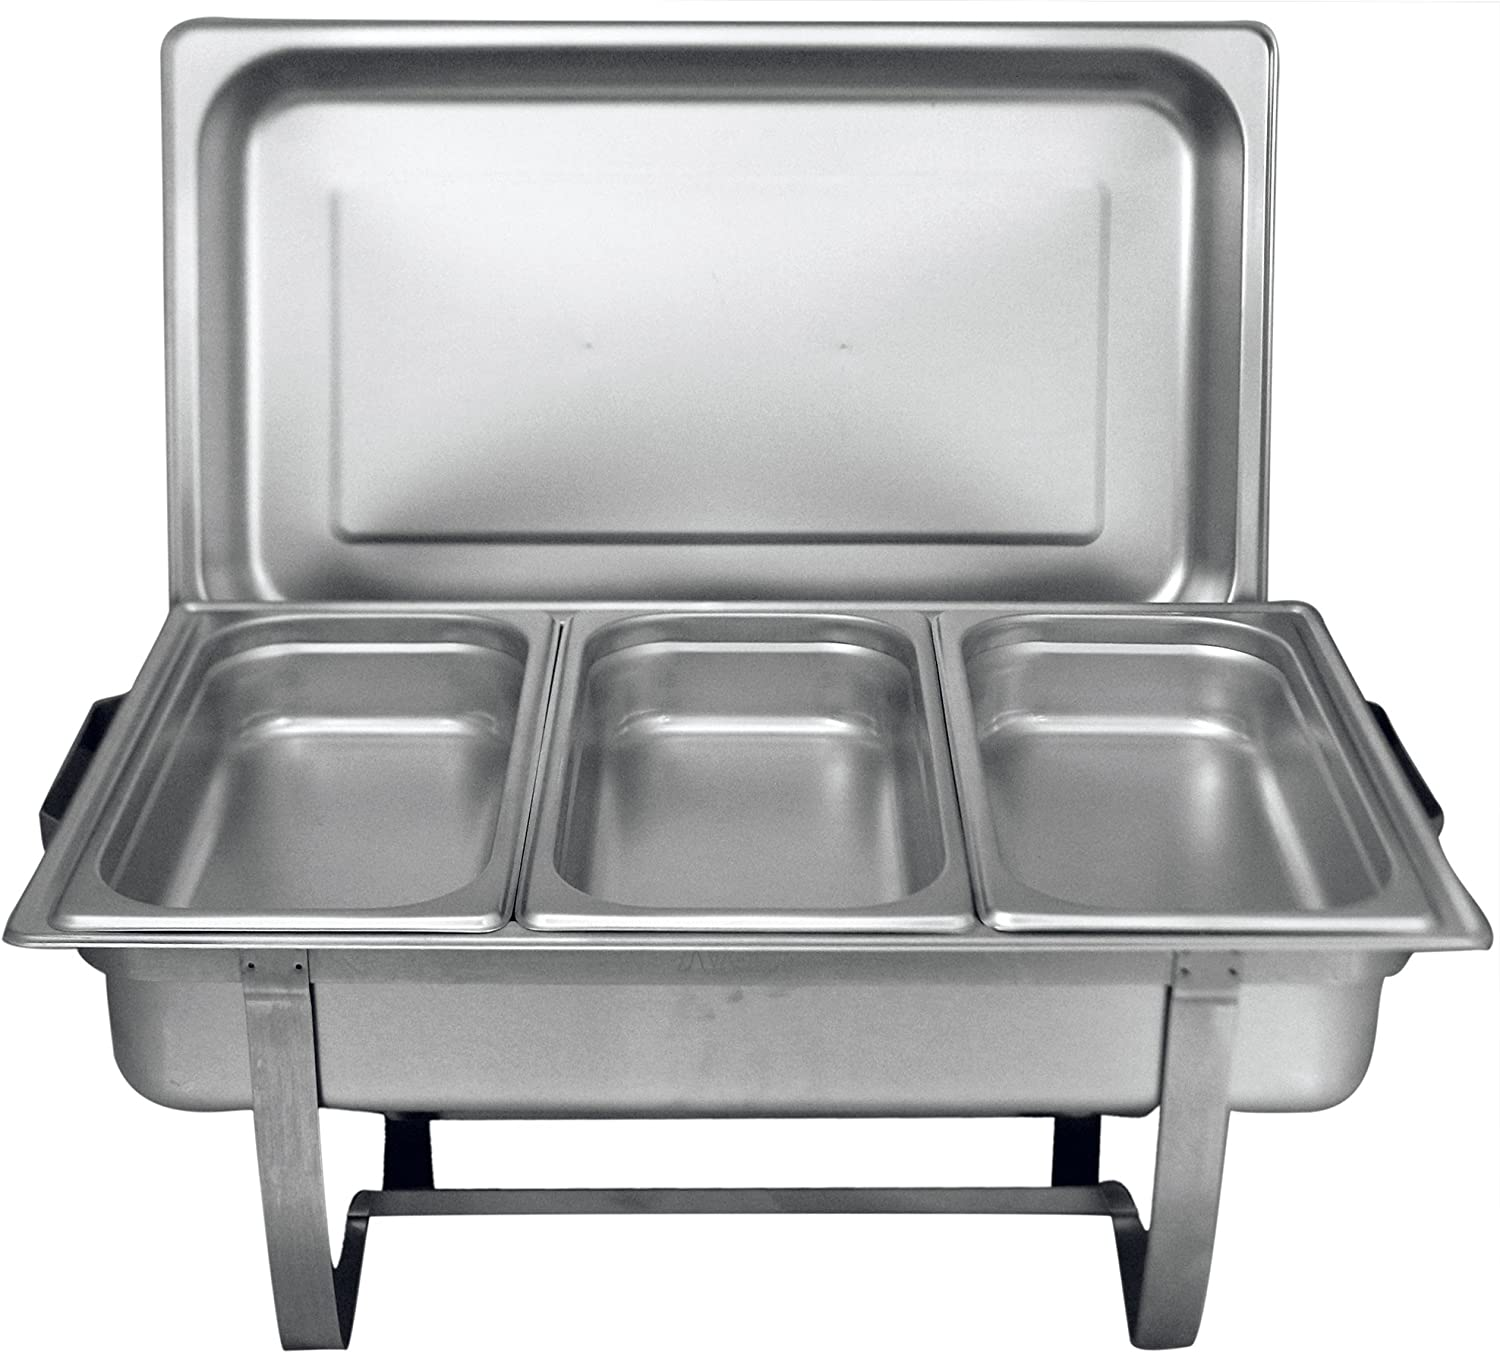 Ranking TOP8 TigerChef 8 Quart Full Size Cool-Tou Steel OFFicial store with Stainless Chafer